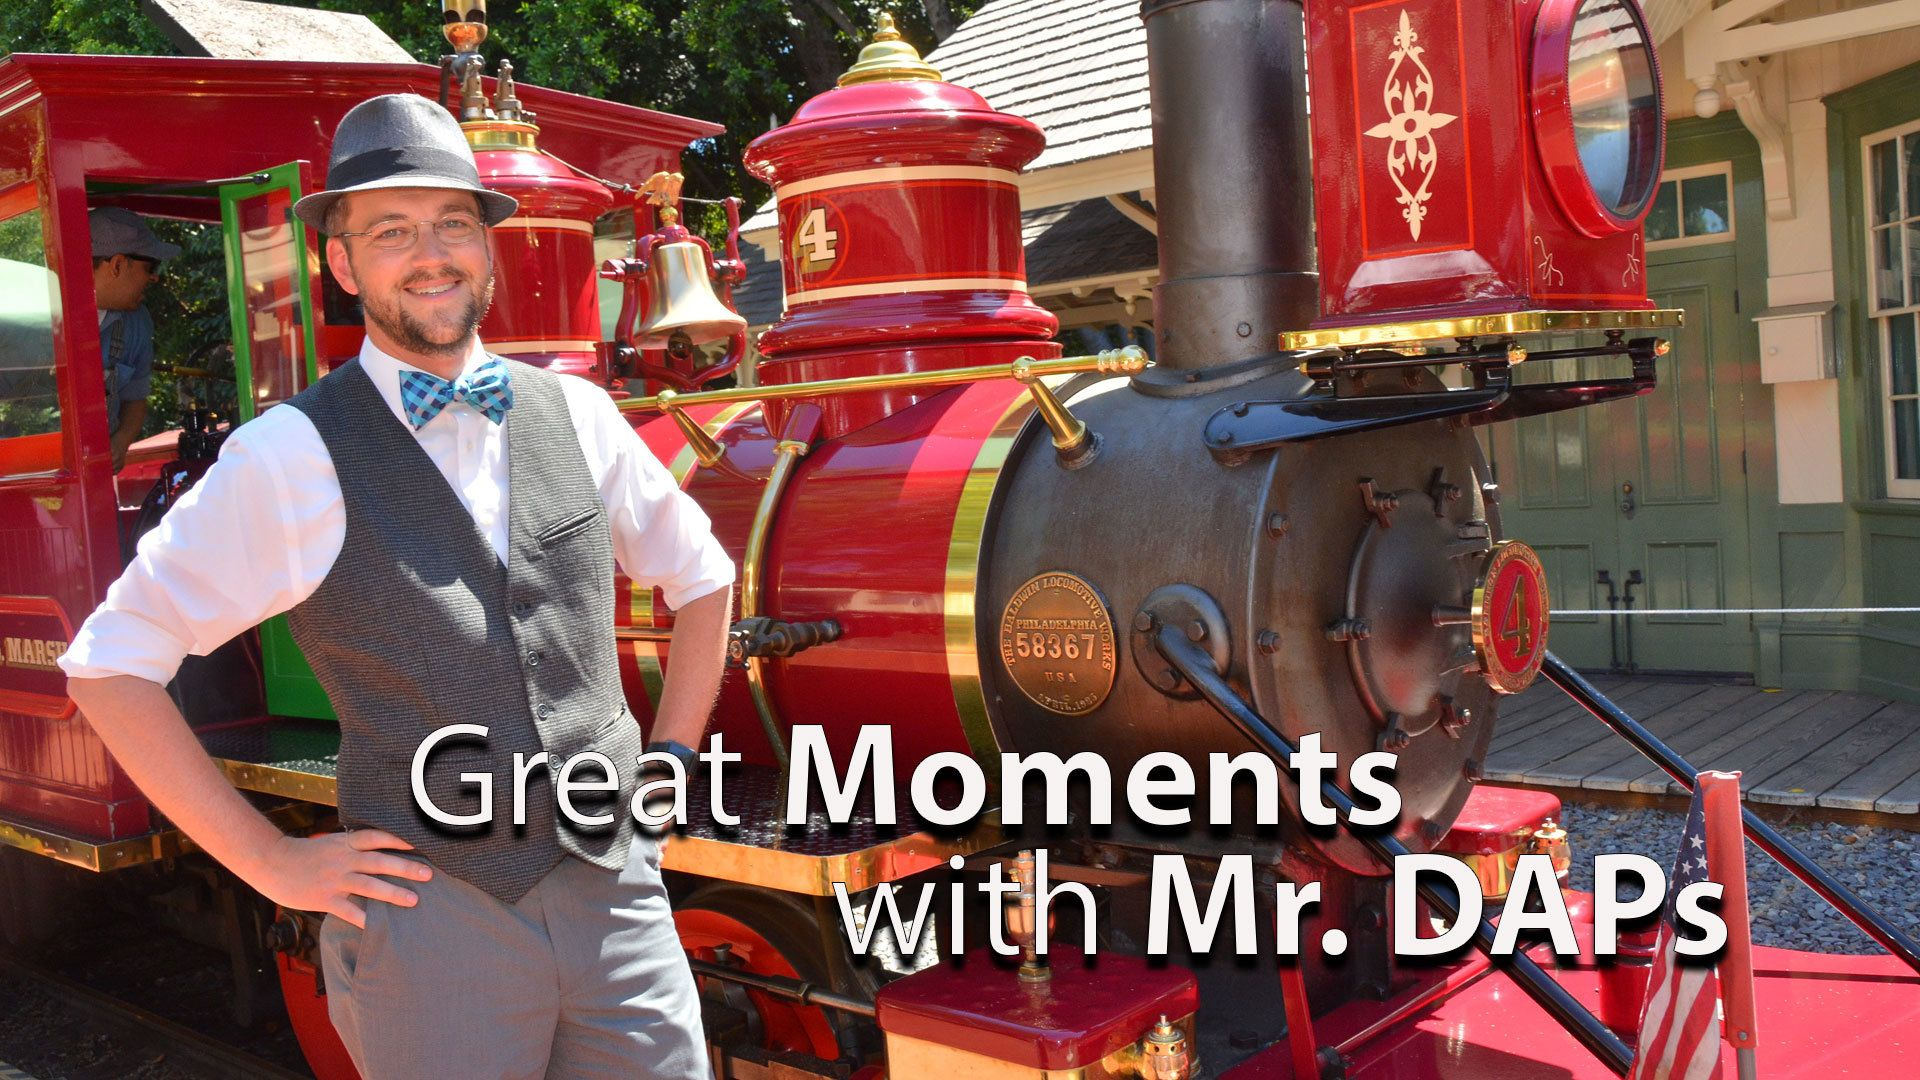 Ant-Man, Star Wars, and Mermaids – Great Moments with Mr. DAPs